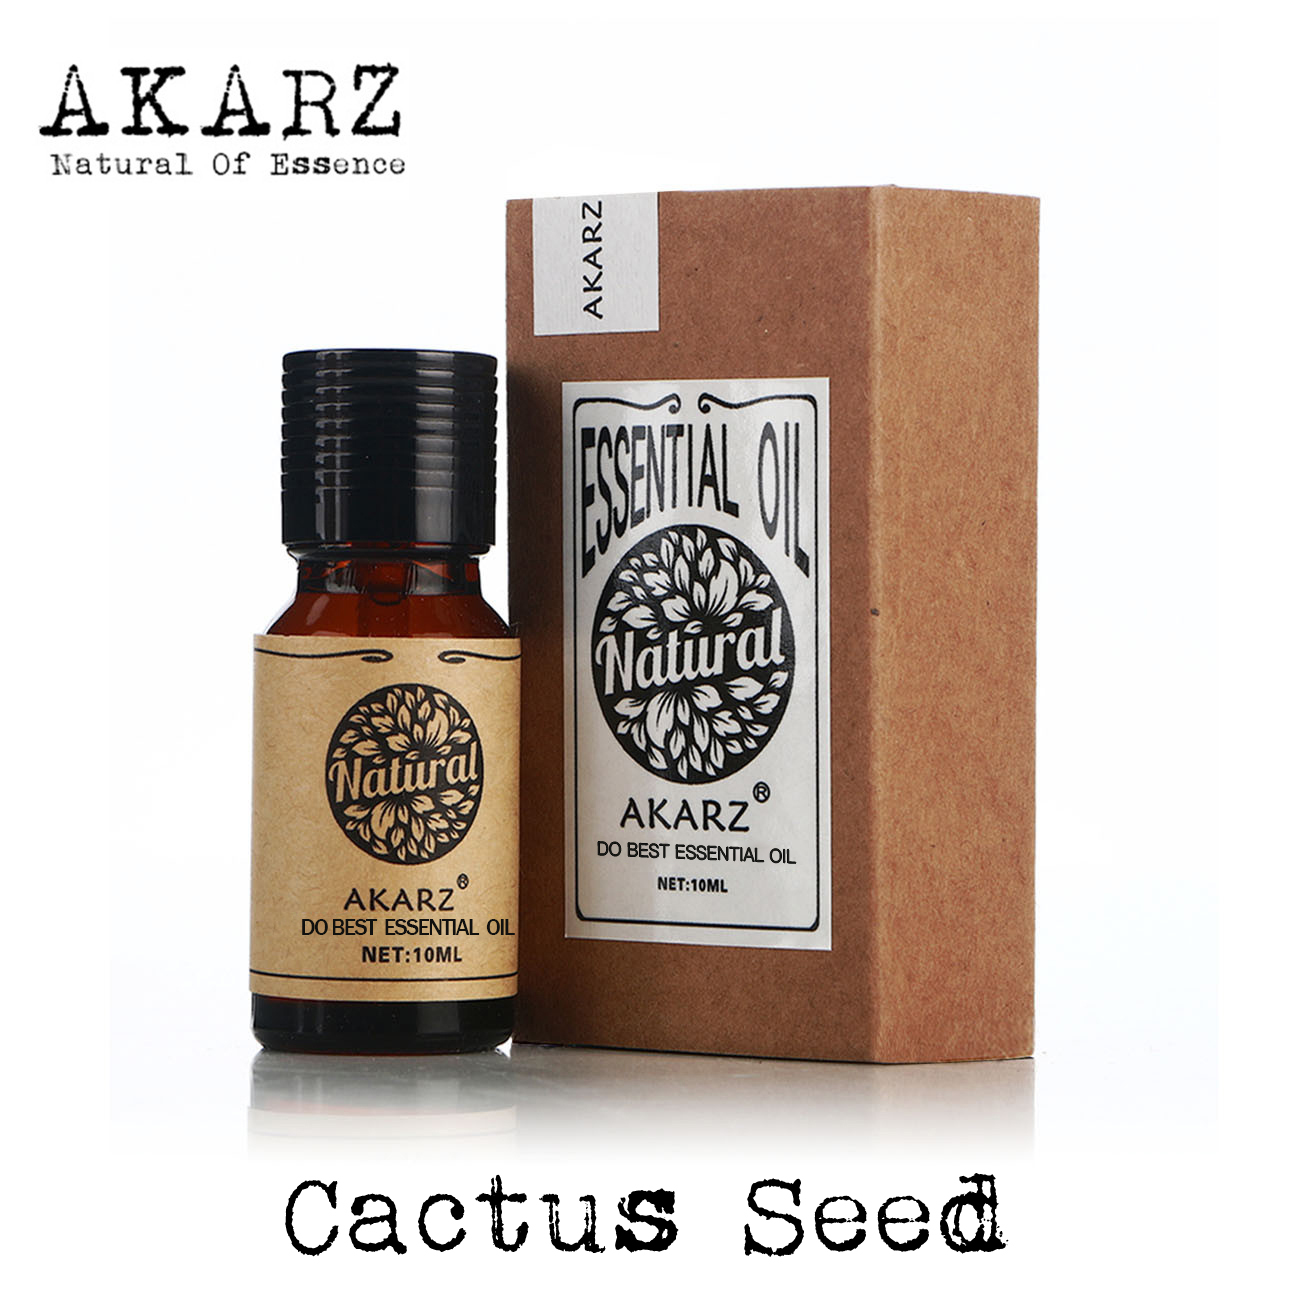 AKARZ Famous Brand Natural Cactus Seeds Essential Oil Dry Hair Repair And Bifurcation Reduce Dandruff Cactus Seeds Oil